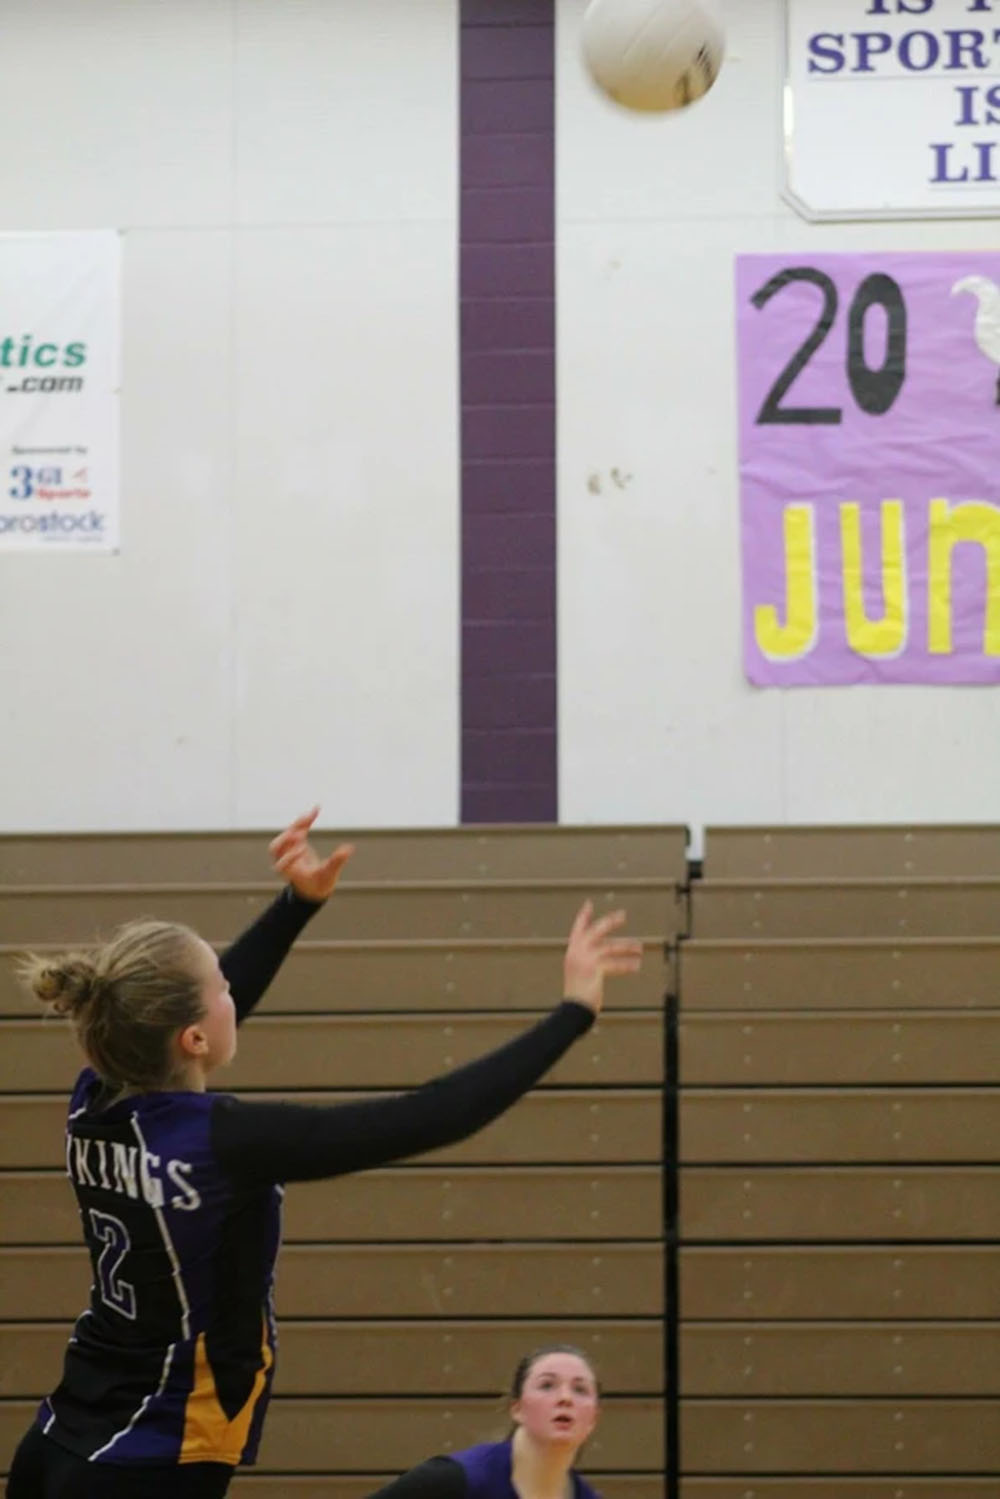 """Game point: Senior Lillian Eason sets her teammate to score the Viking's twenty fifth point for their third set. Kamiak visited Lake Stevens for their match on October 10, 2017; the game lasted five sets. After losing the first two sets of this game, Lake came back and dominated the next three sets. """"Come out and play like you've got nothing to lose,"""" said senior Hannah Aaenson when entering their fifth set."""